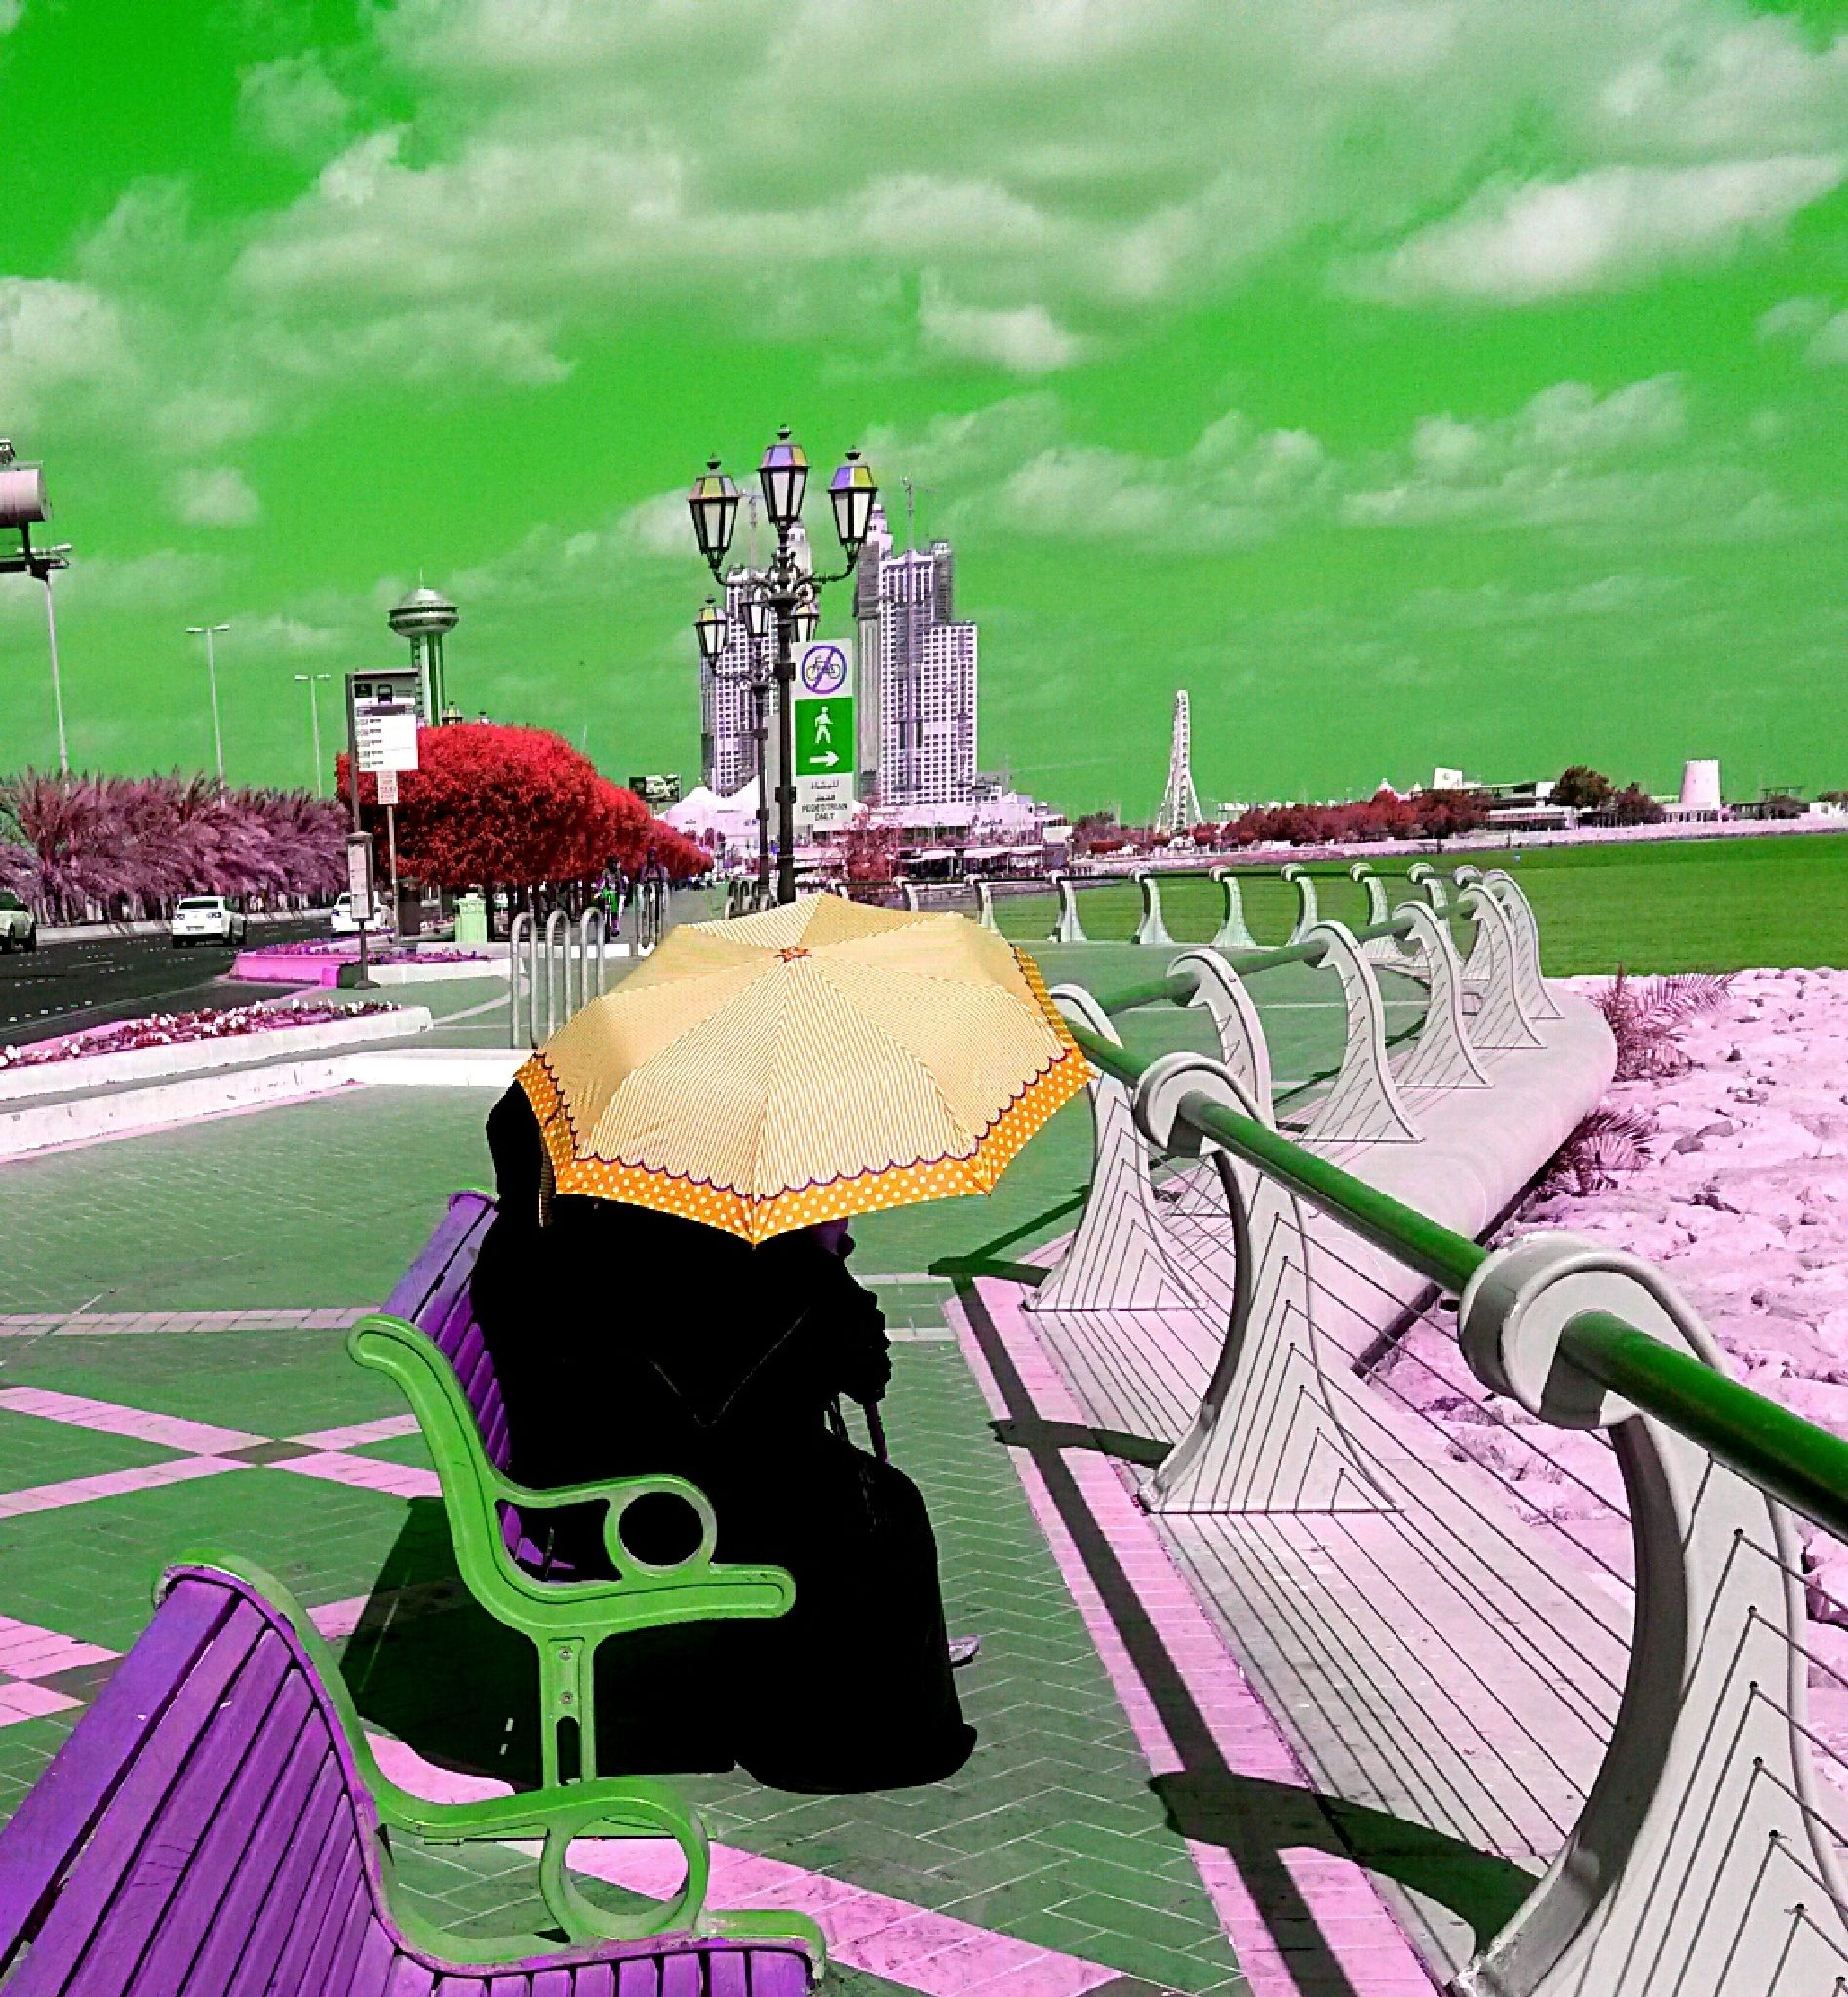 Abu Dhabi promenade today, with a Toulouse-Lautrec feel by Esmeralda Searle